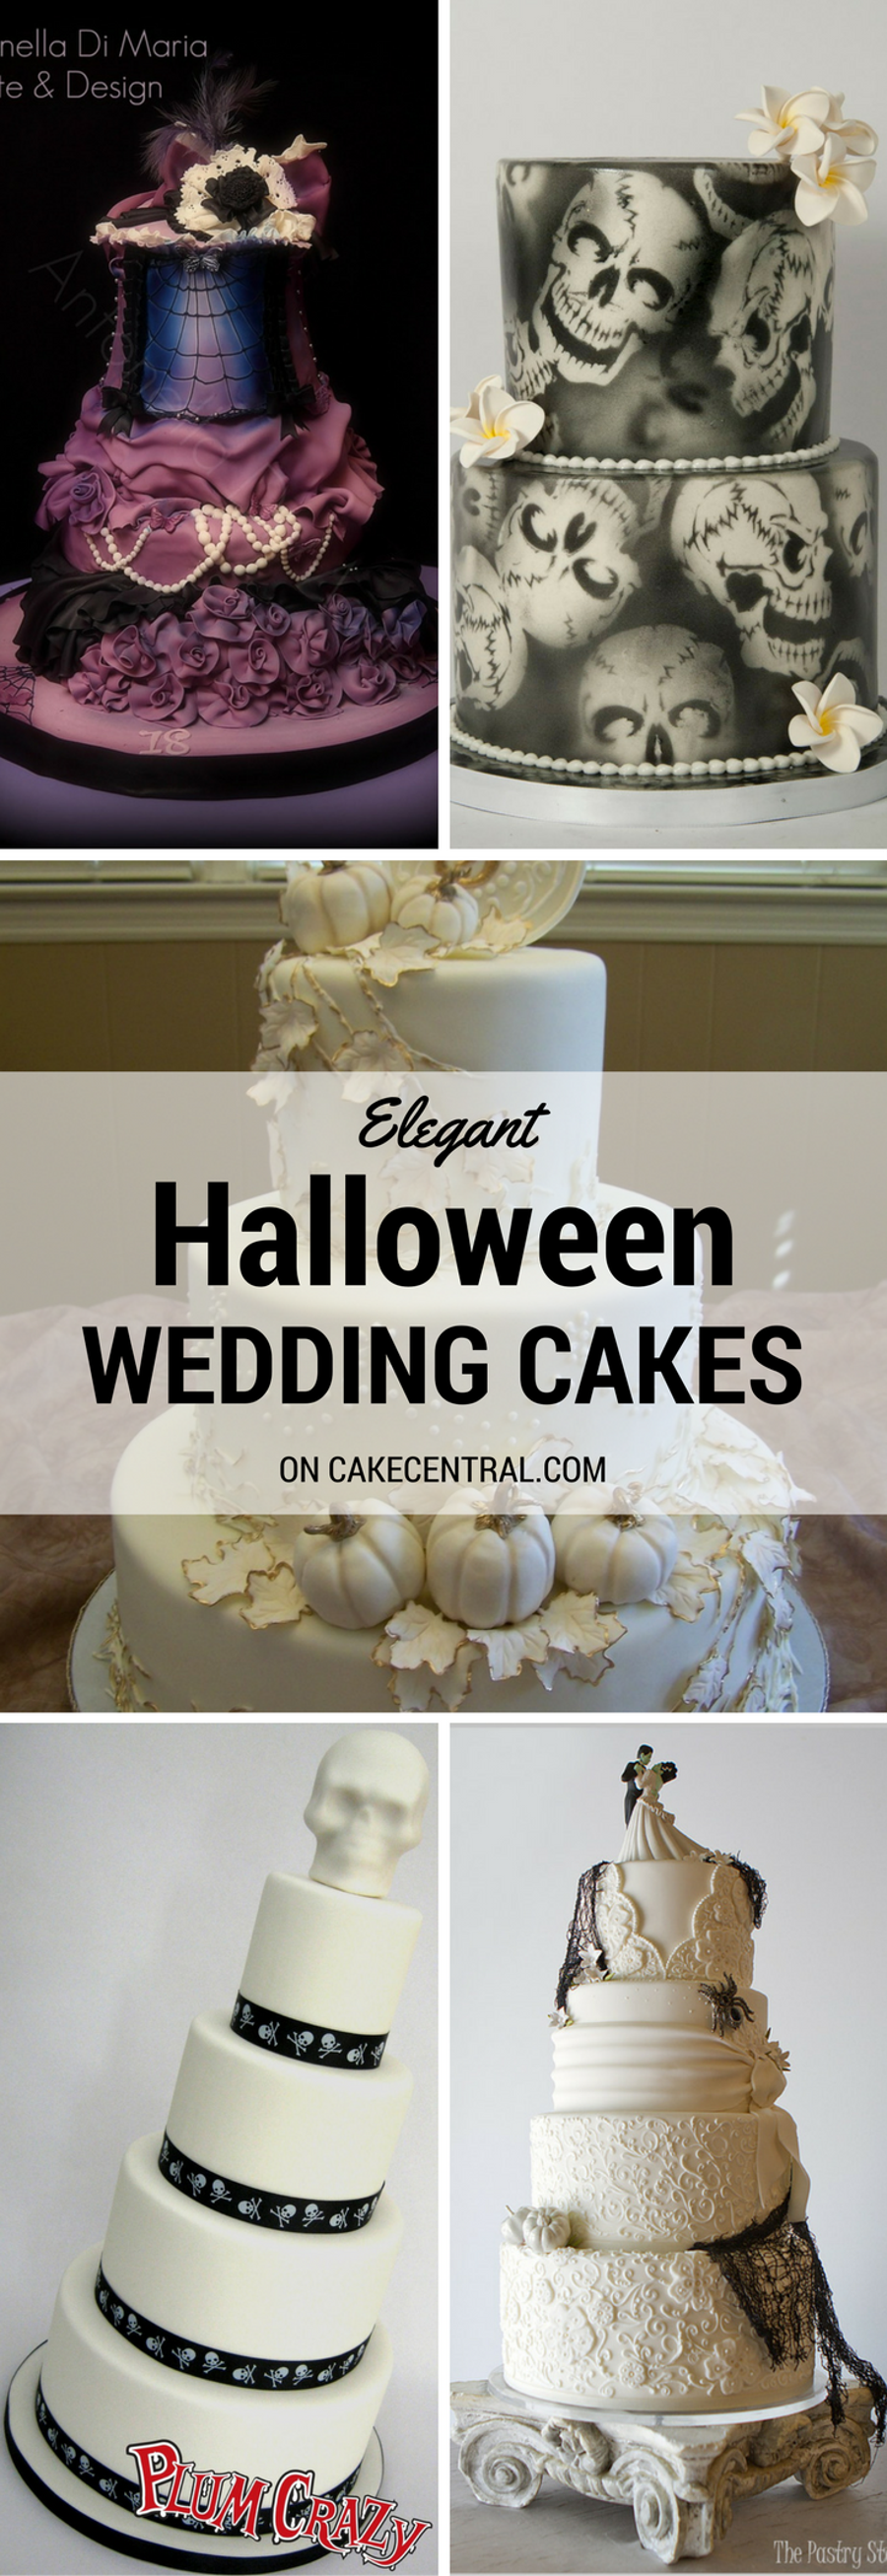 Elegant Halloween Wedding Cakes